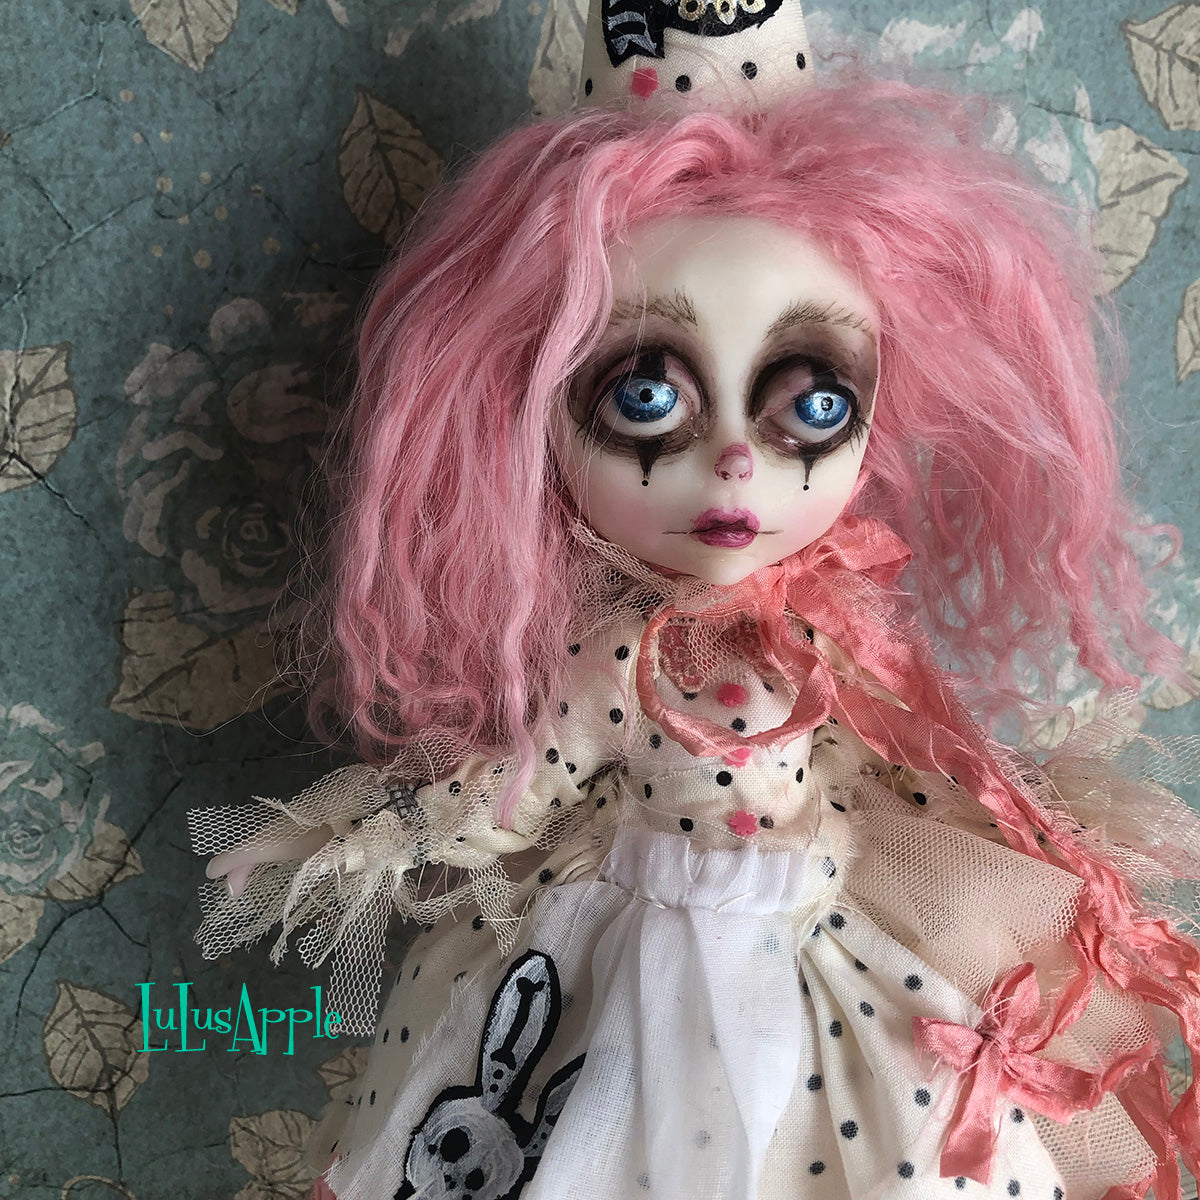 Pink Alice Poupee the Clown Victorian Wonderland OOAK Art Doll LuLusApple